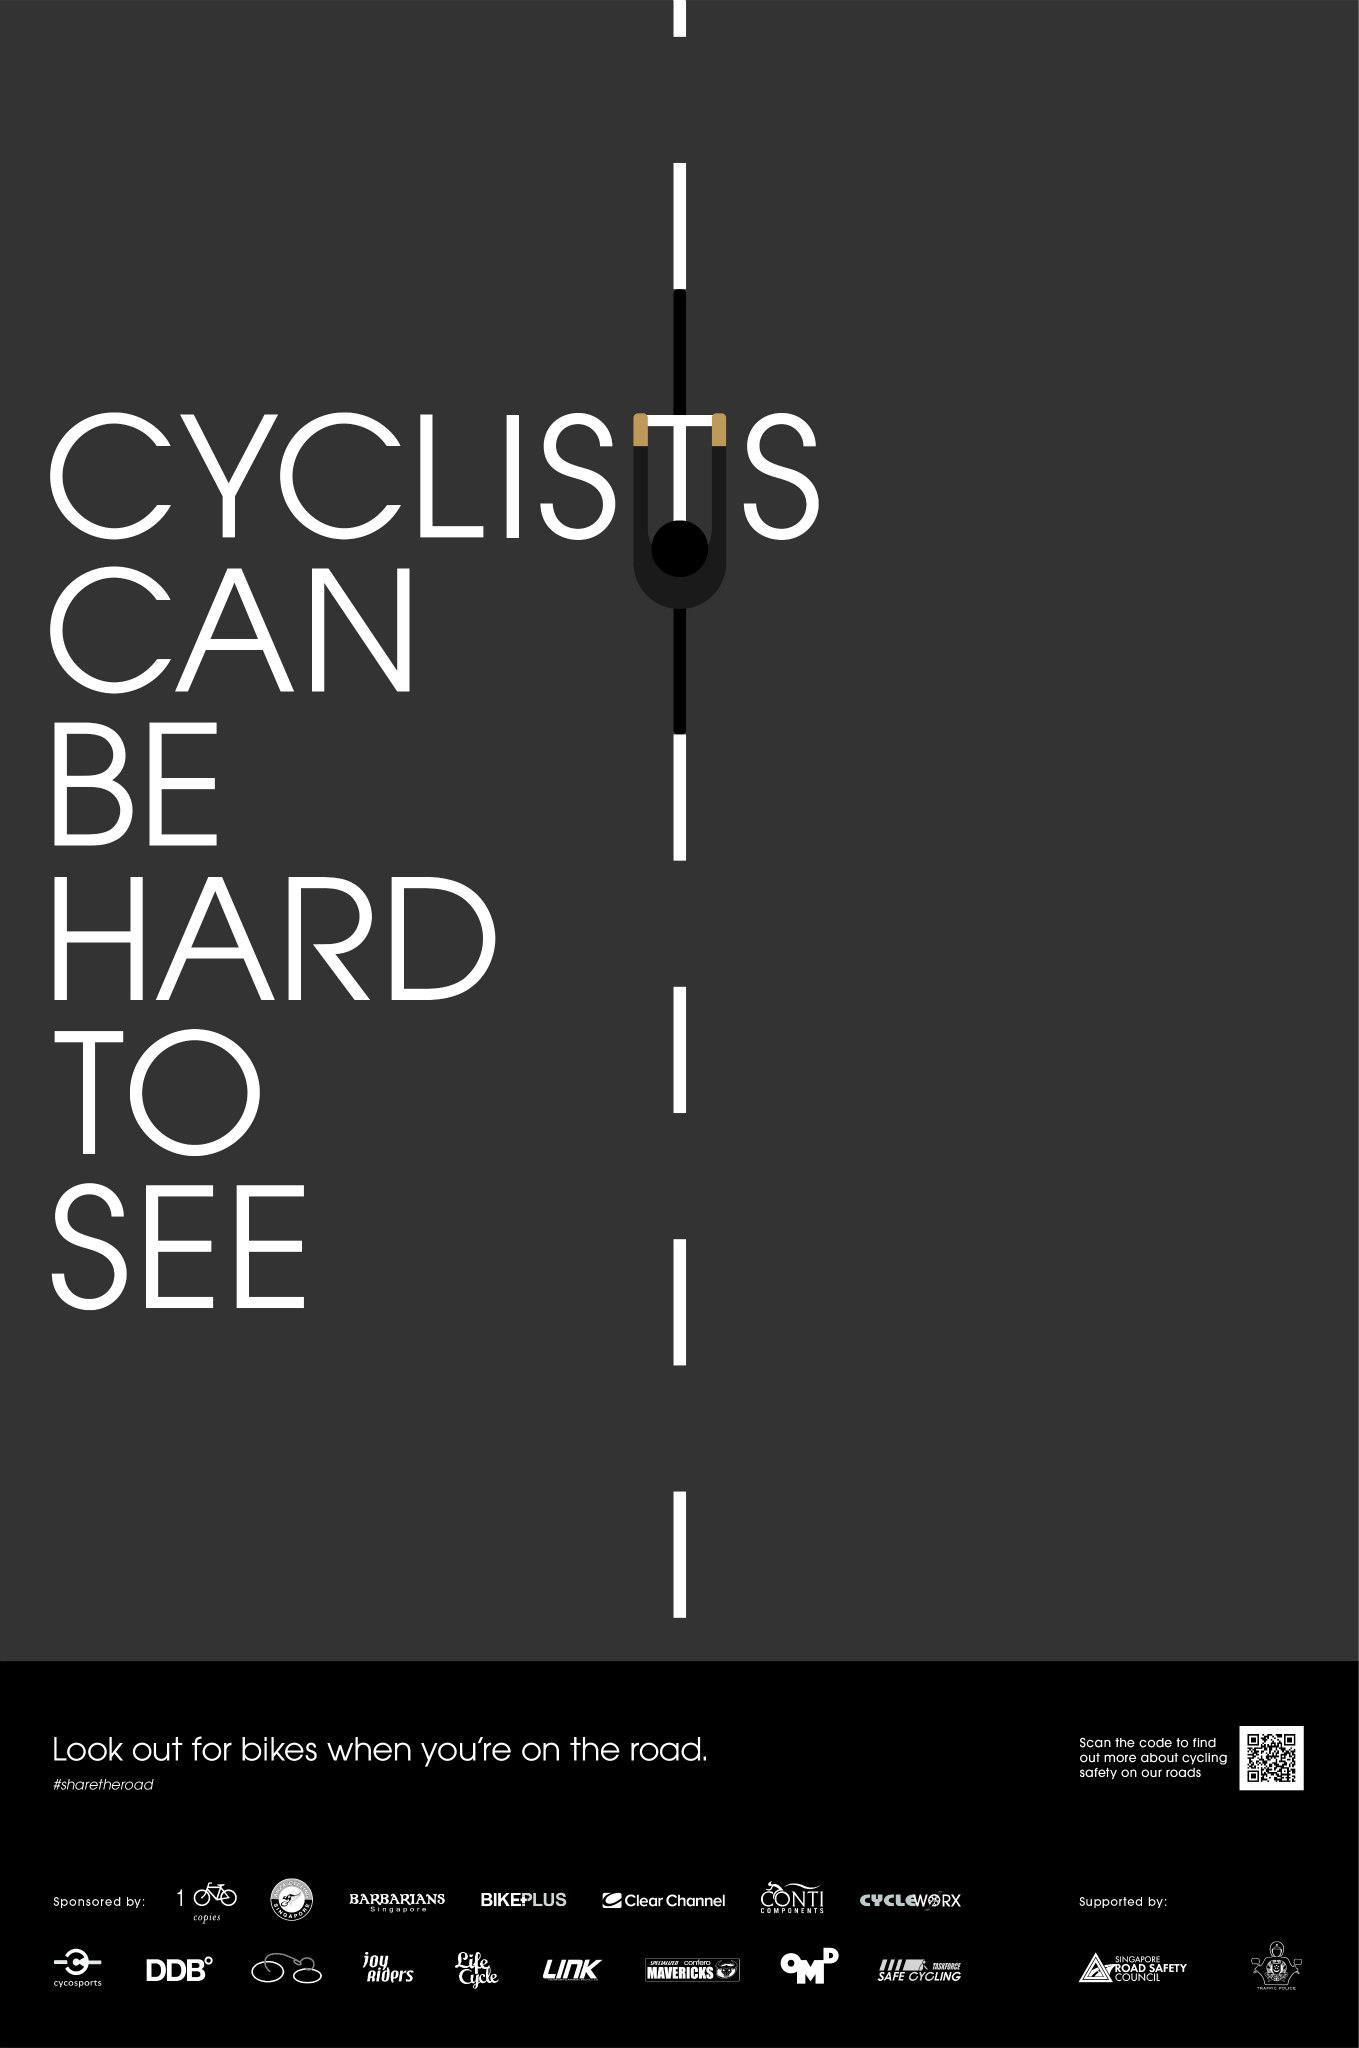 Cyclist Are Hard To See